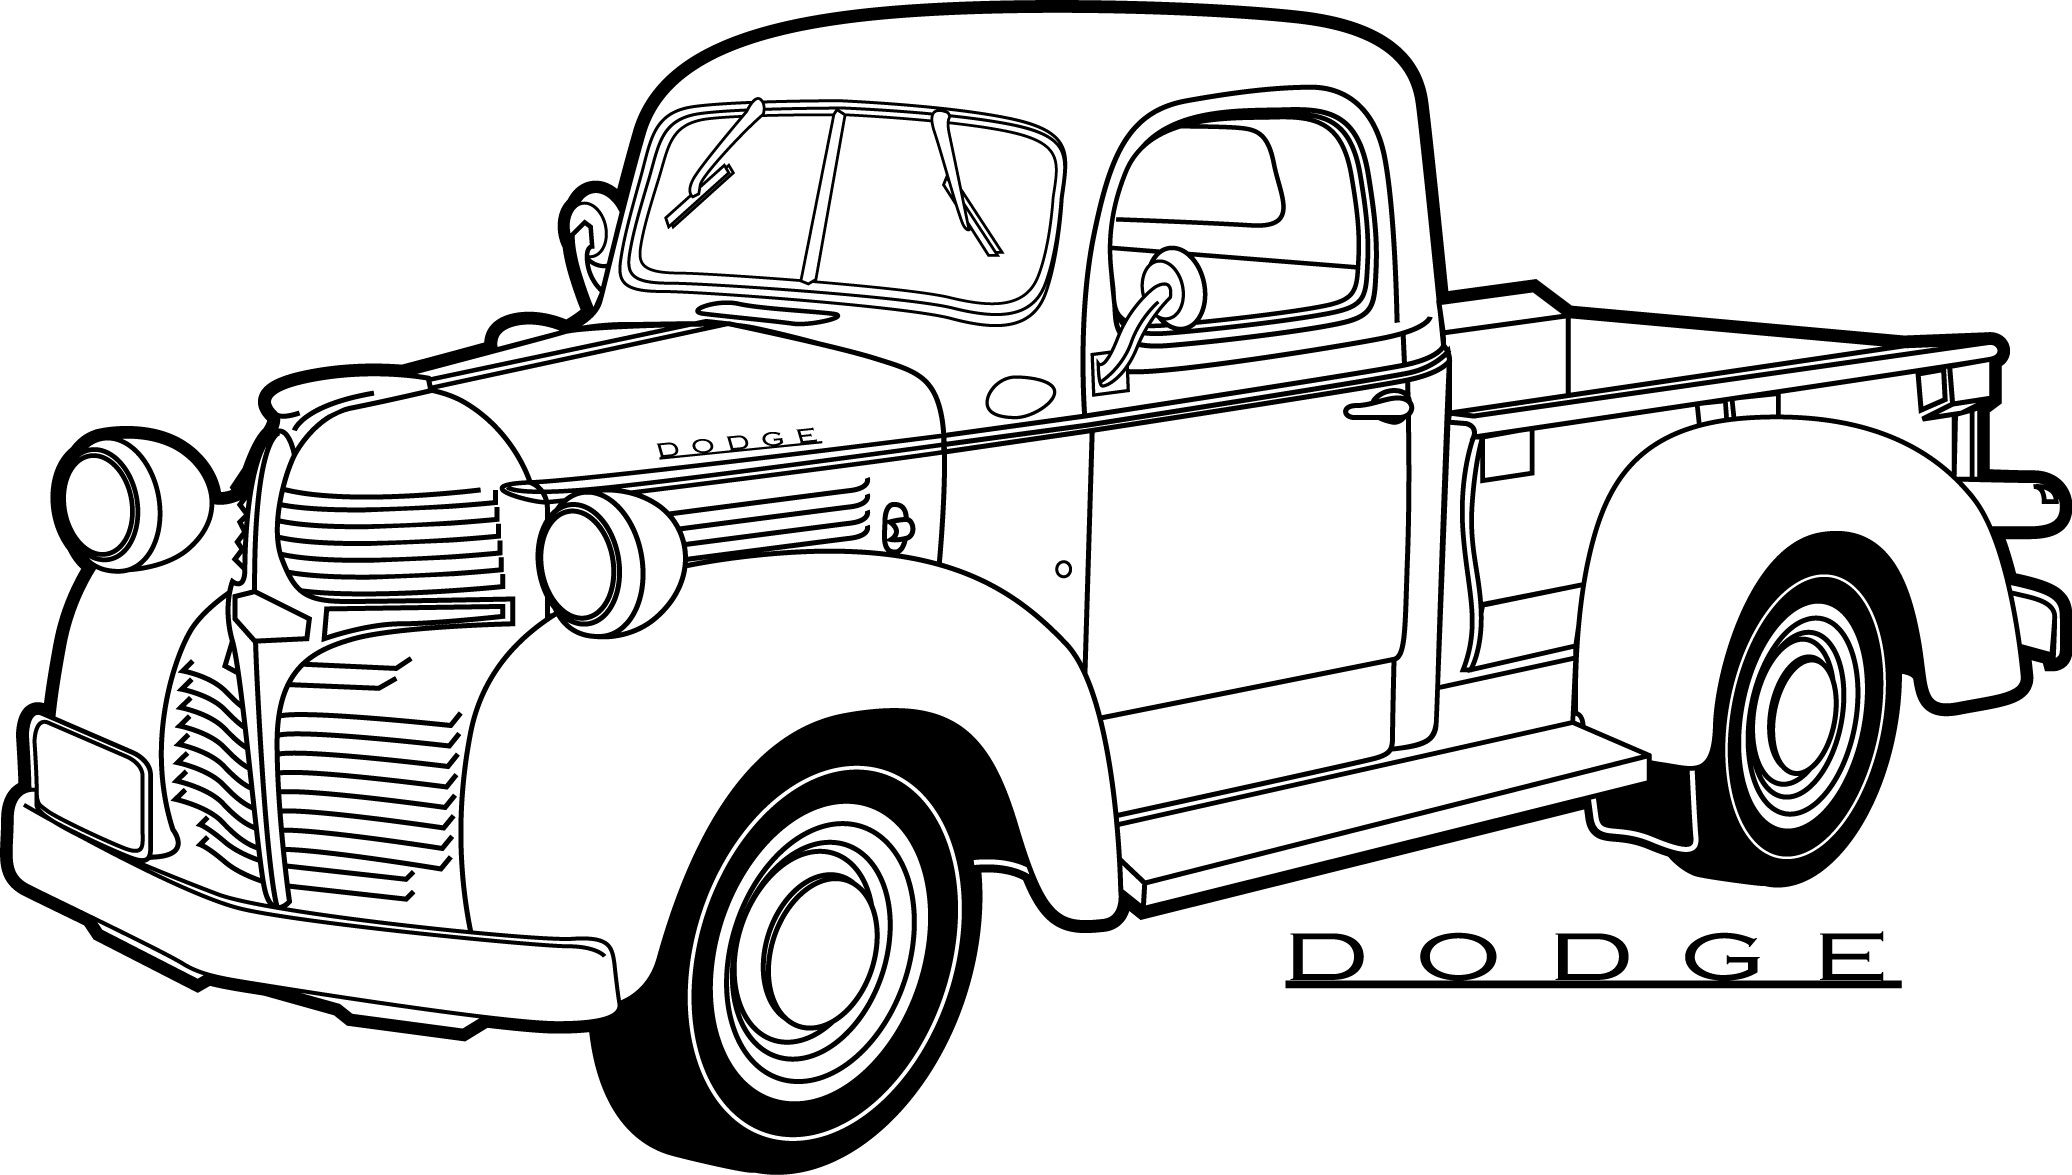 hot rod coloring sheets hot rod coloring pages educative printable coloring sheets hot rod